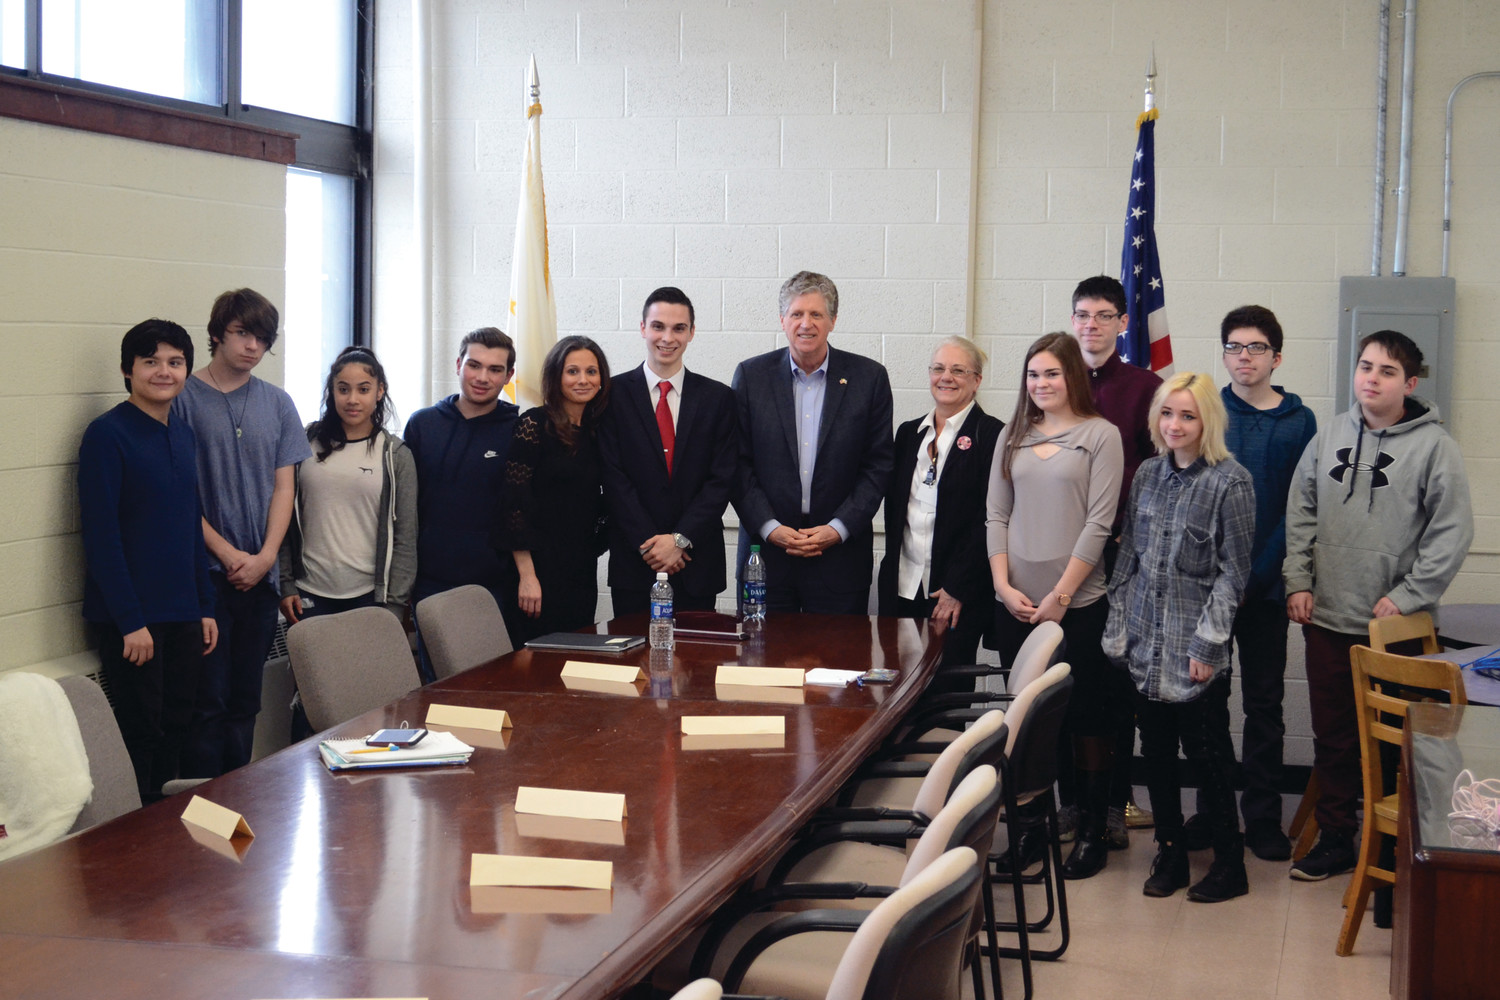 ROUNDTABLE TALK: Lt. Governor Daniel McKee stopped by Pilgrim High School on Tuesday, Feb. 6 to have a discussion with the Pilgrim Political Involvement Club.